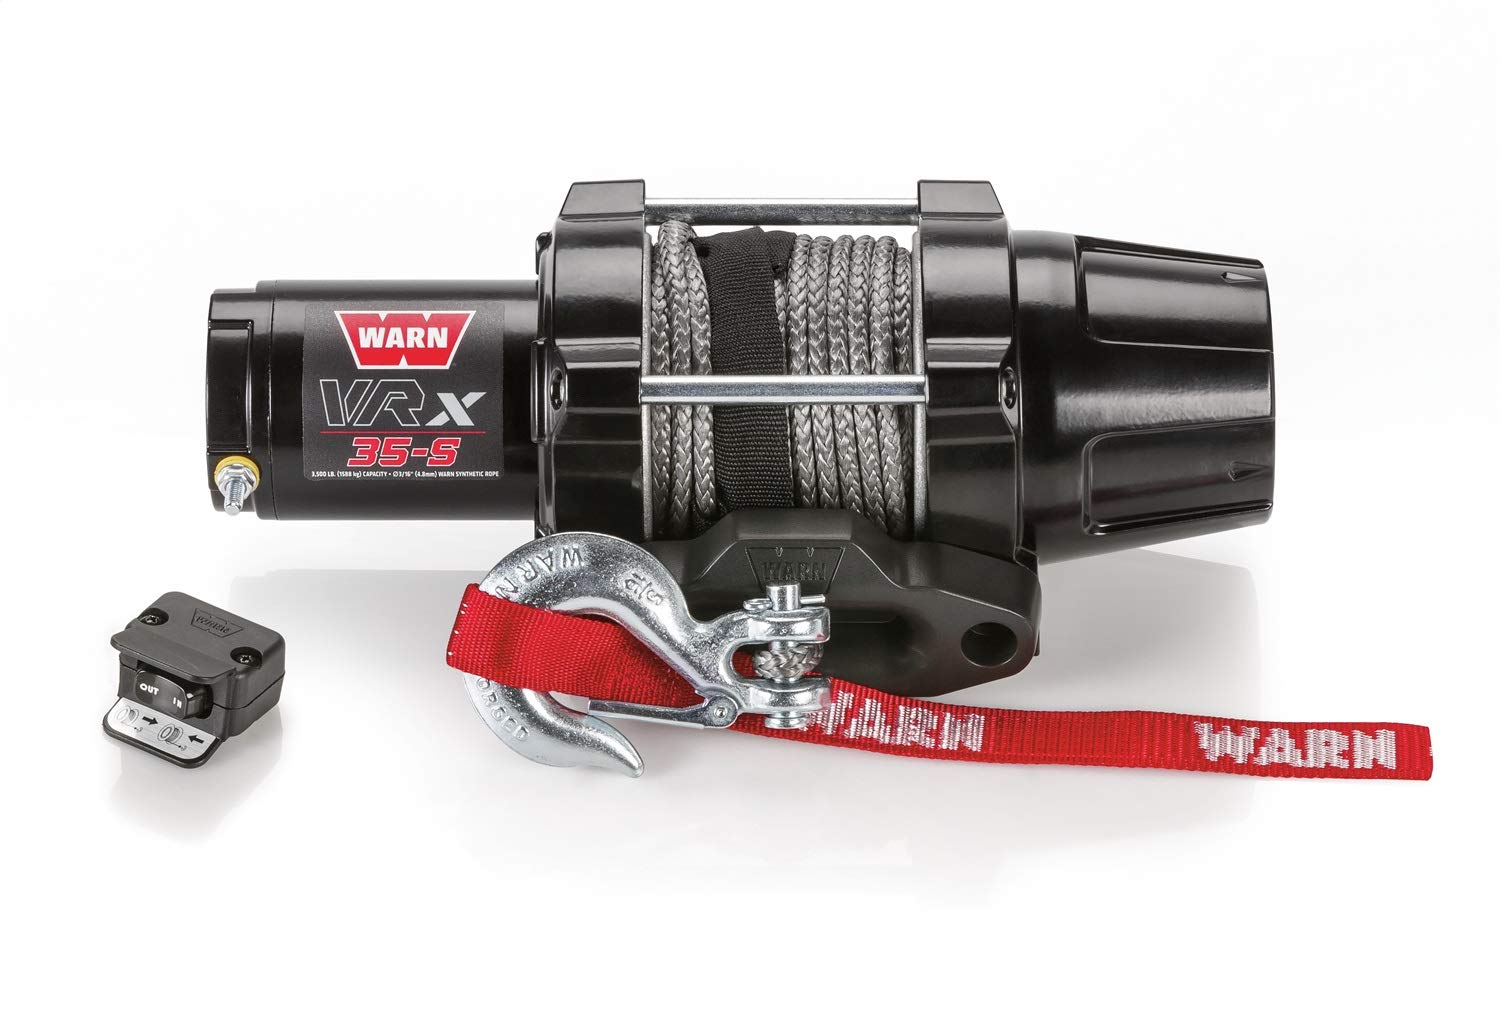 WARN 101030 VRX 35-S Powersports Winch With Synthetic Rope